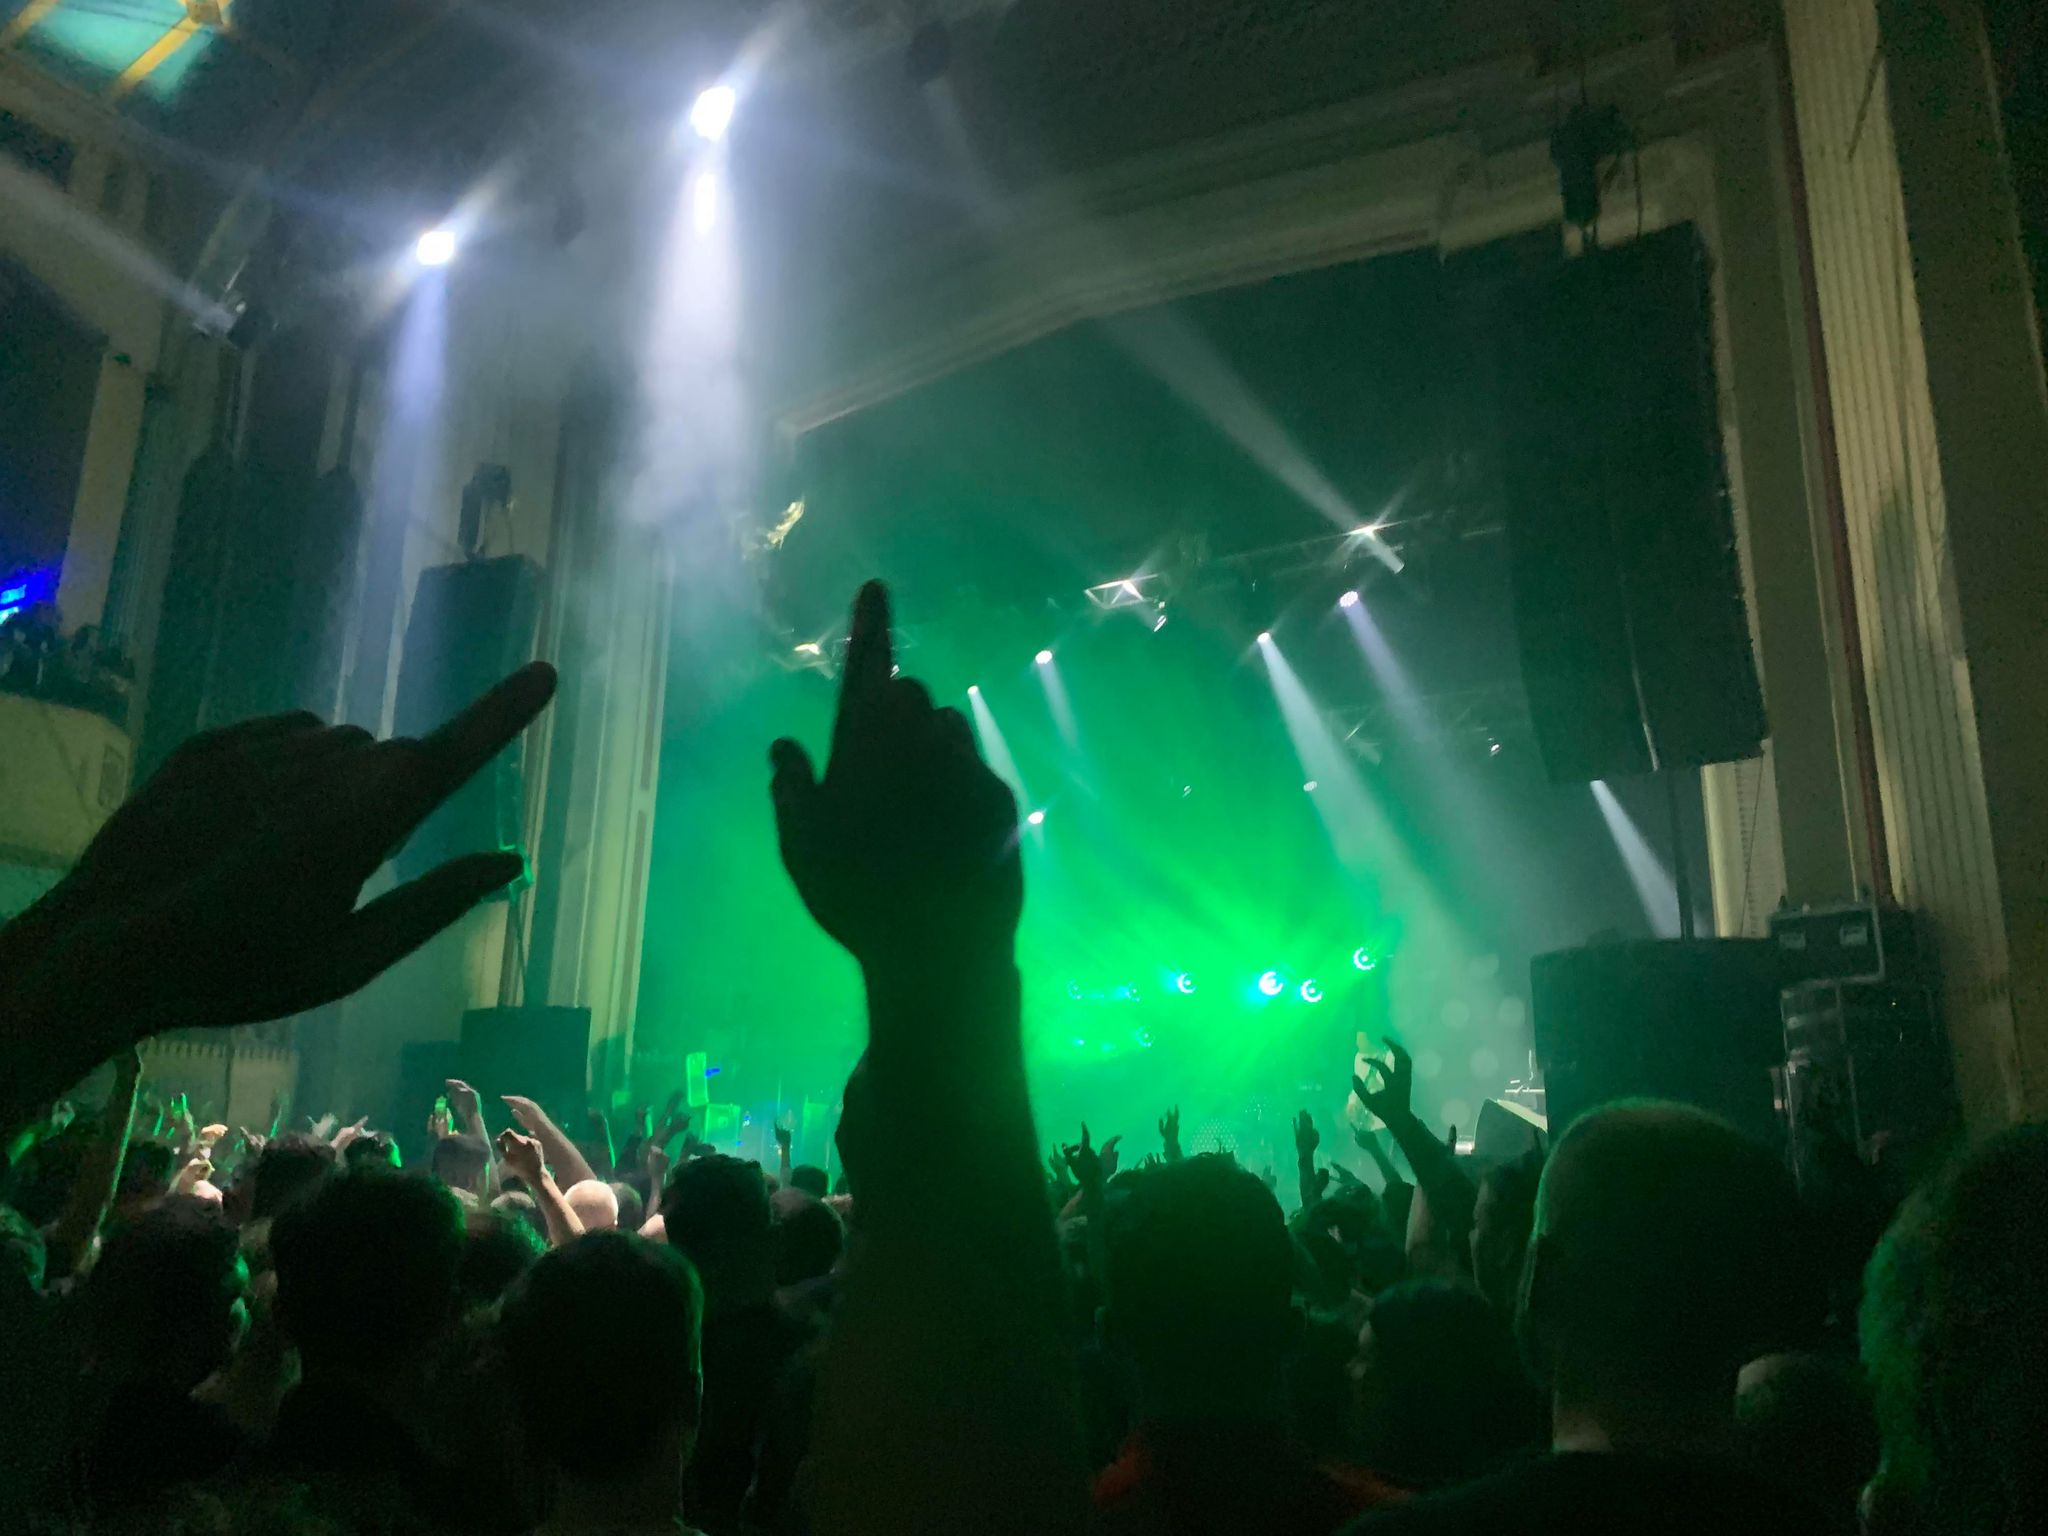 Review of Kasabian gig at Glasgow O2 Academy